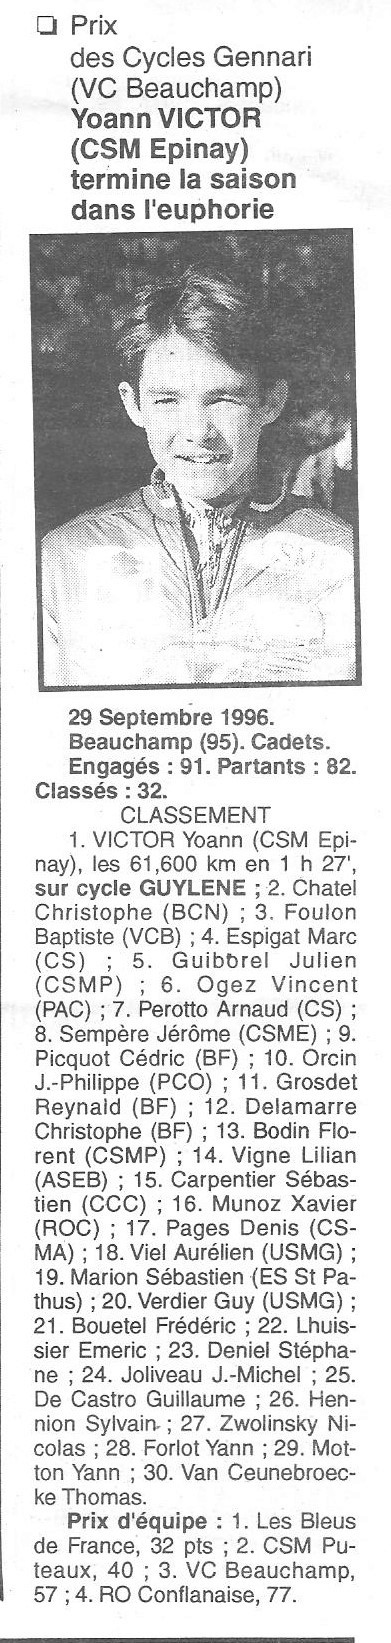 Coureurs et Clubs de Octobre 1993 à Septembre 1996 - Page 42 0_03413